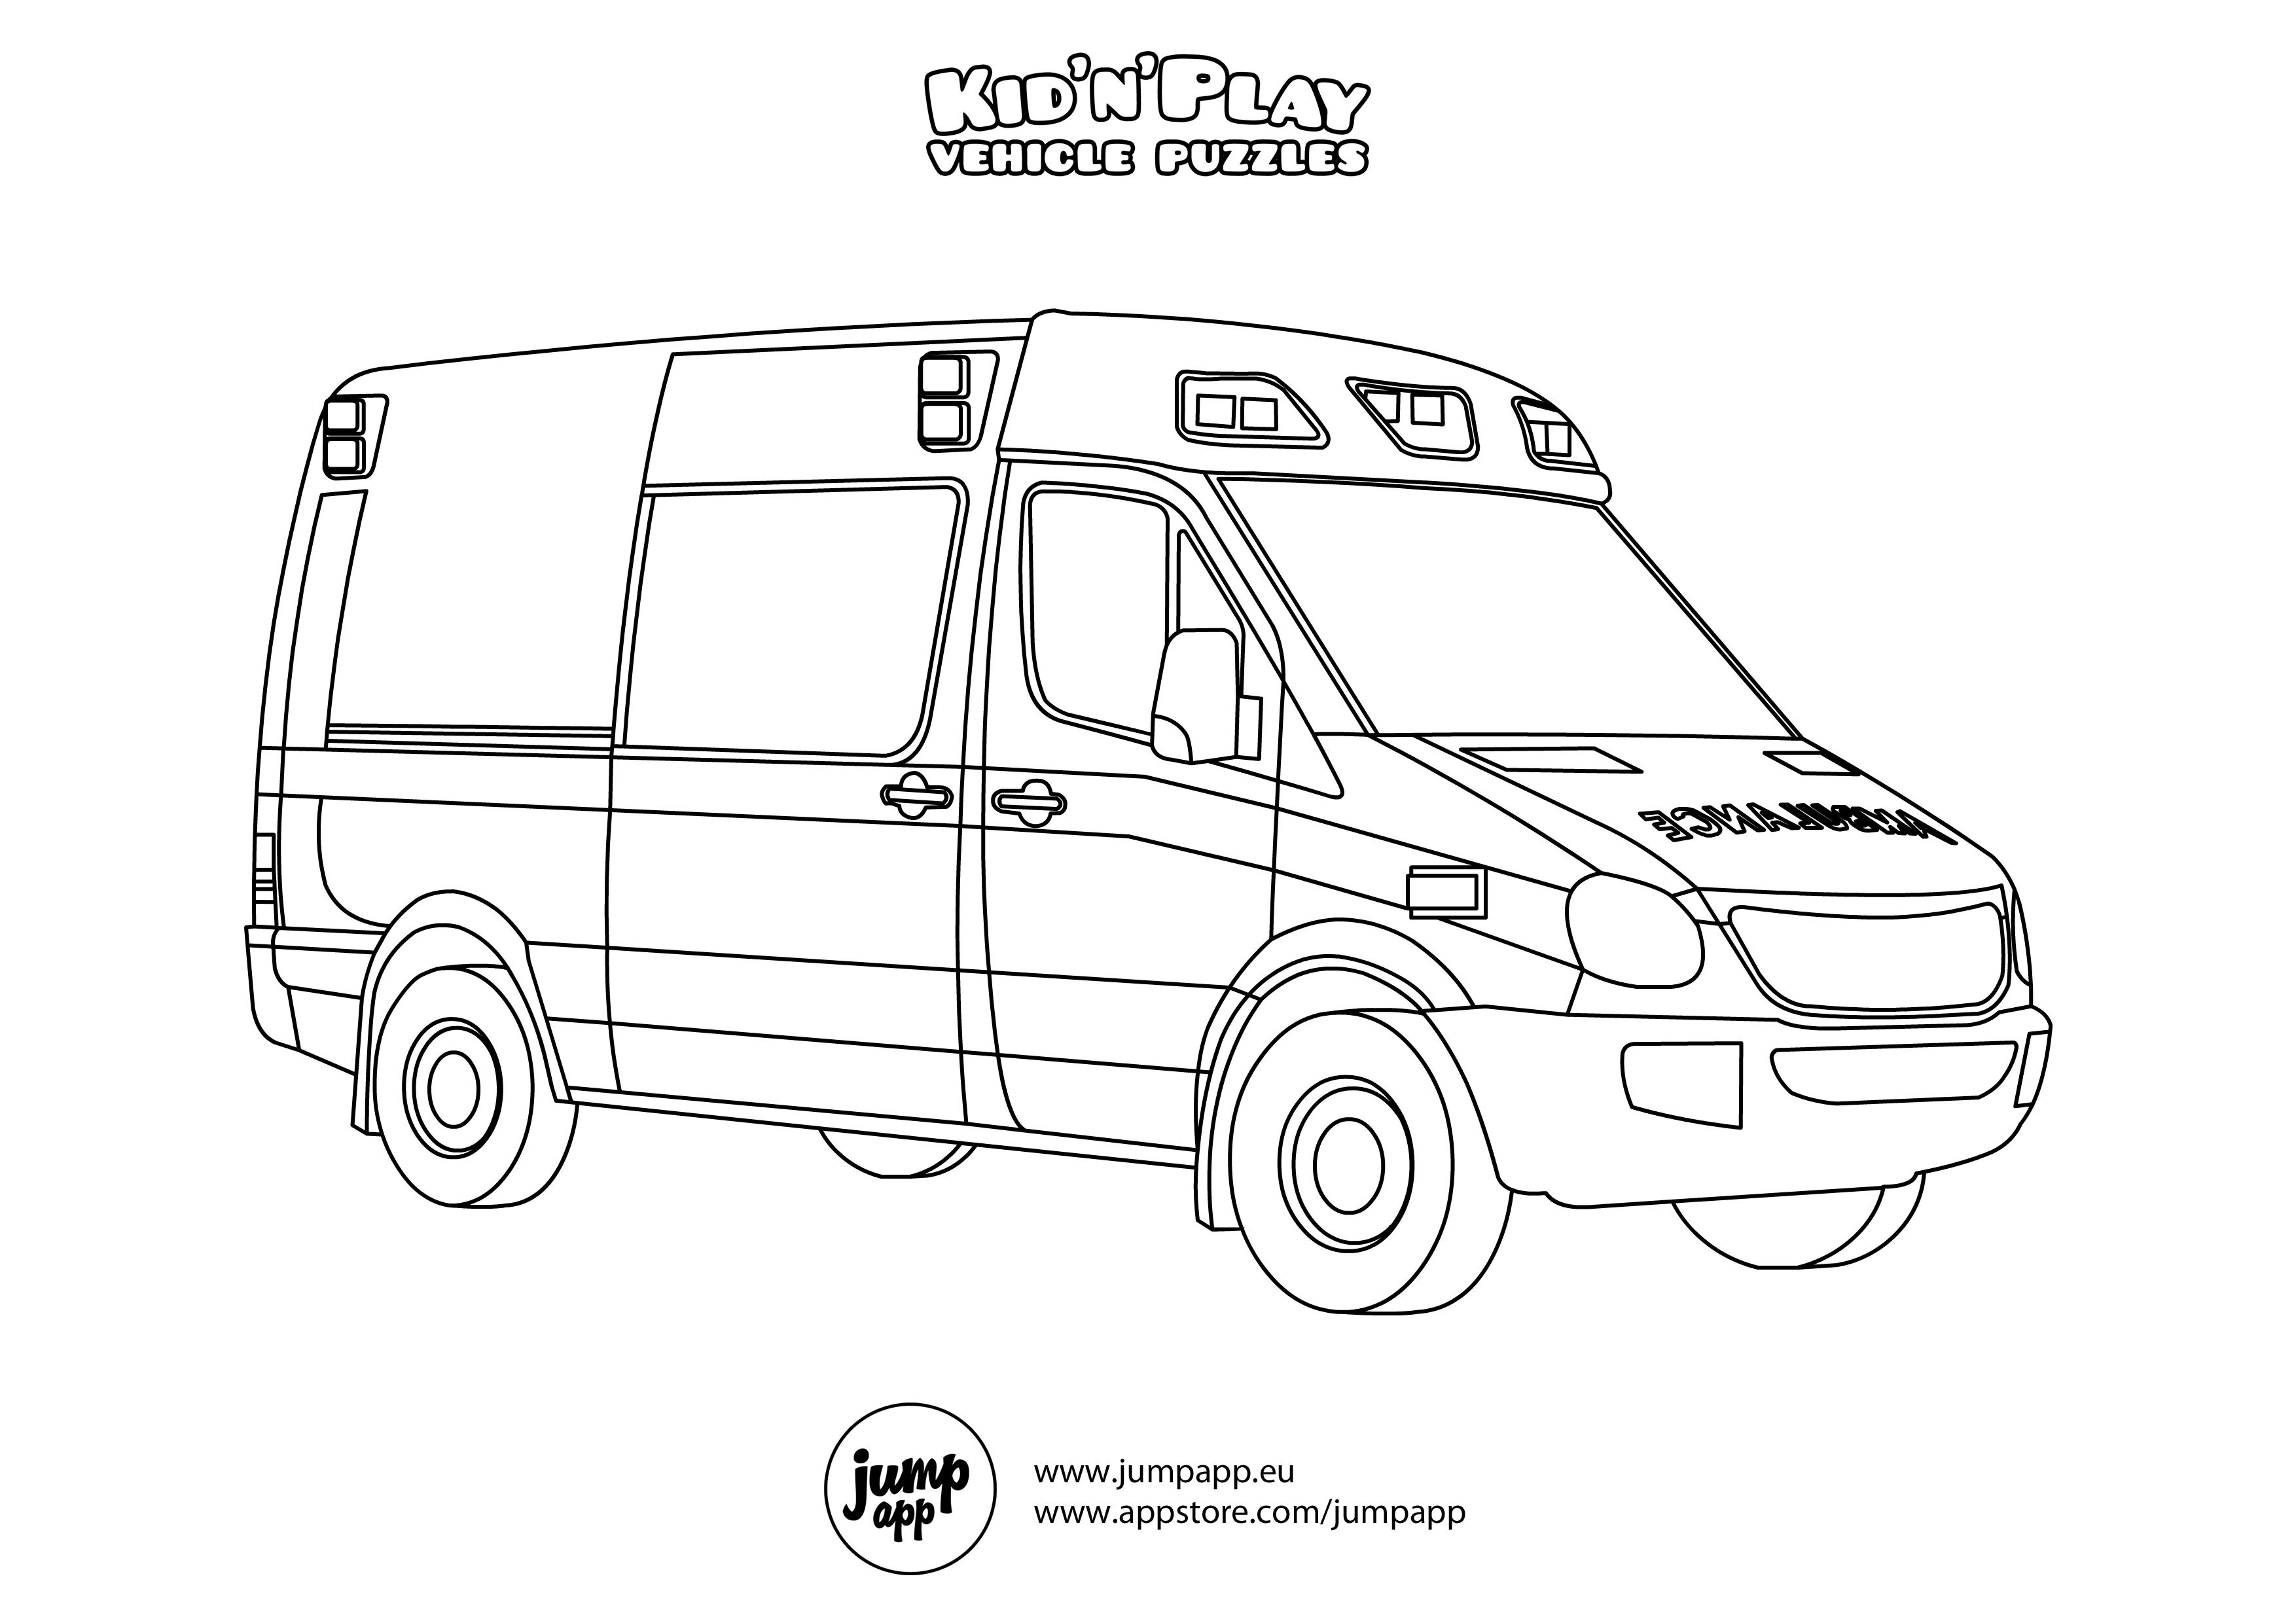 ambulance Truck coloring pages, Race car coloring pages